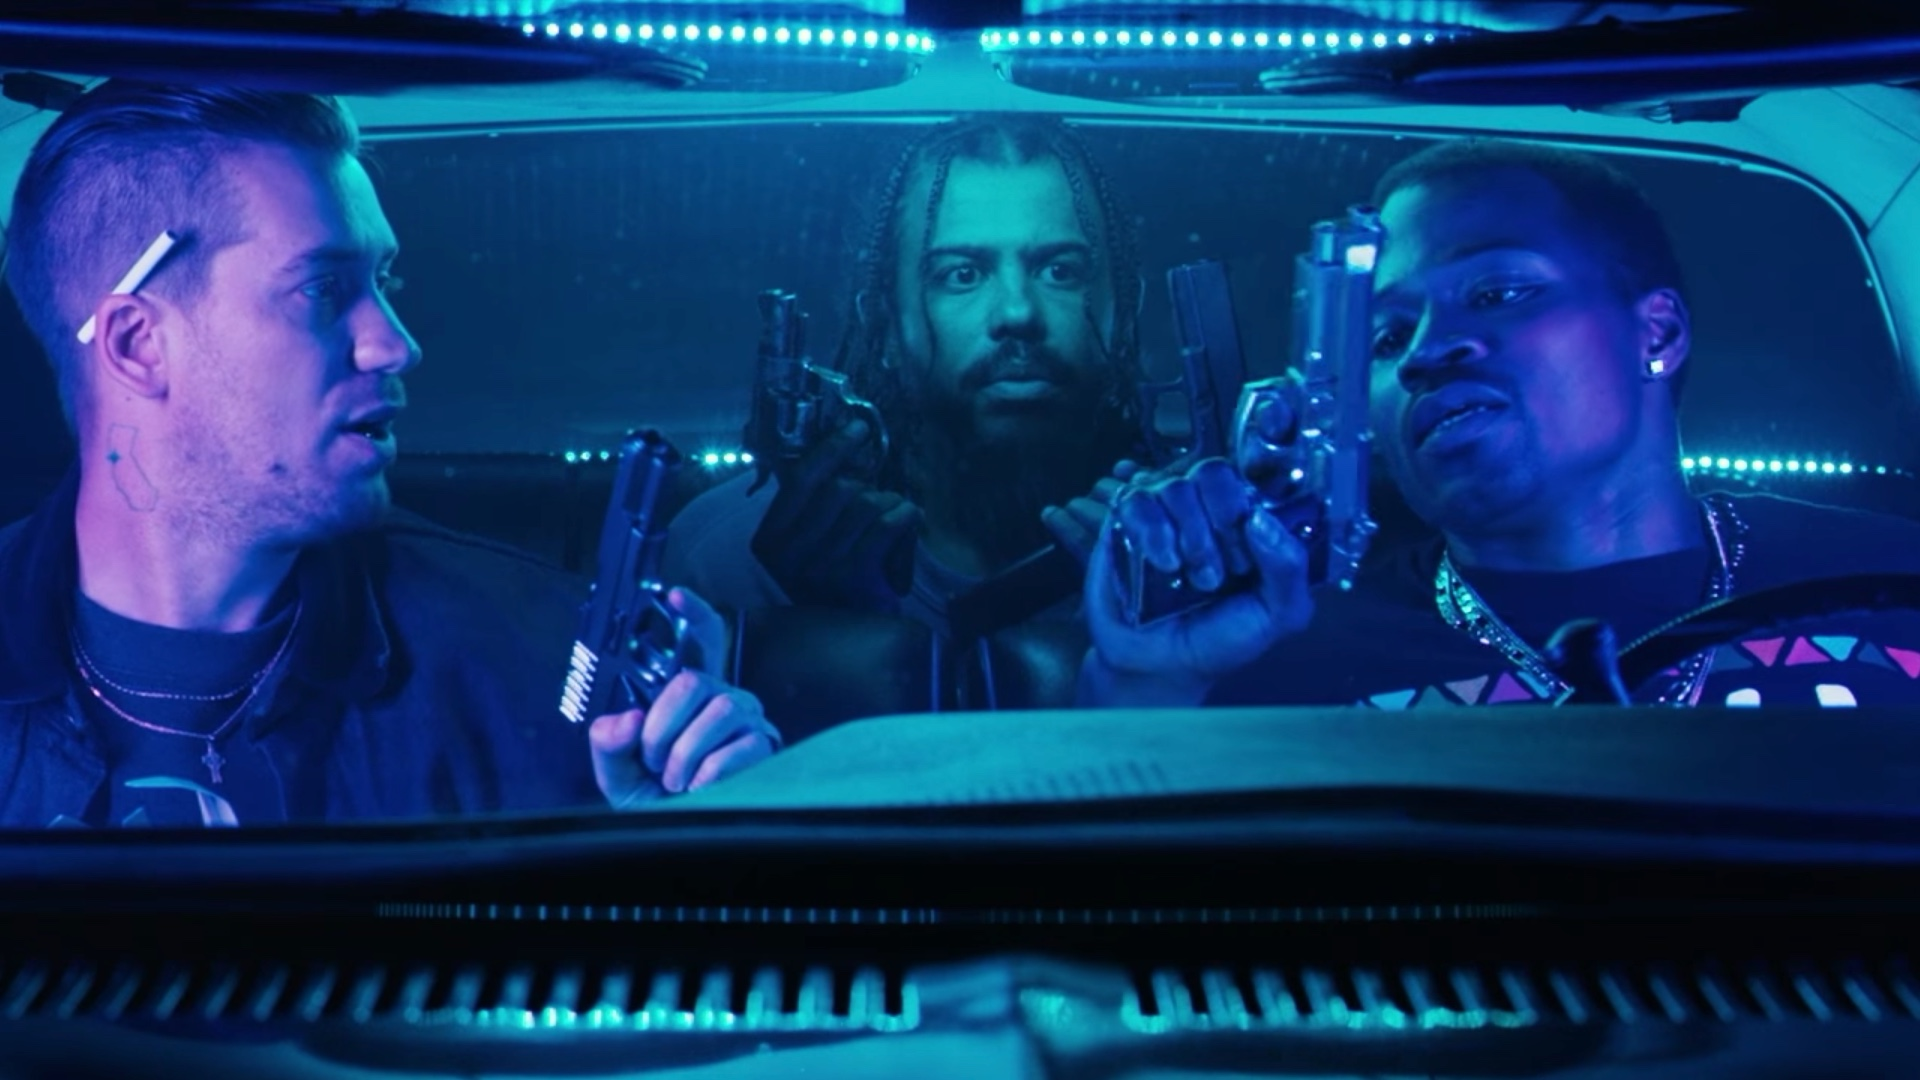 Blindspotting is the rare buddy comedy that tackles social issues. It works.